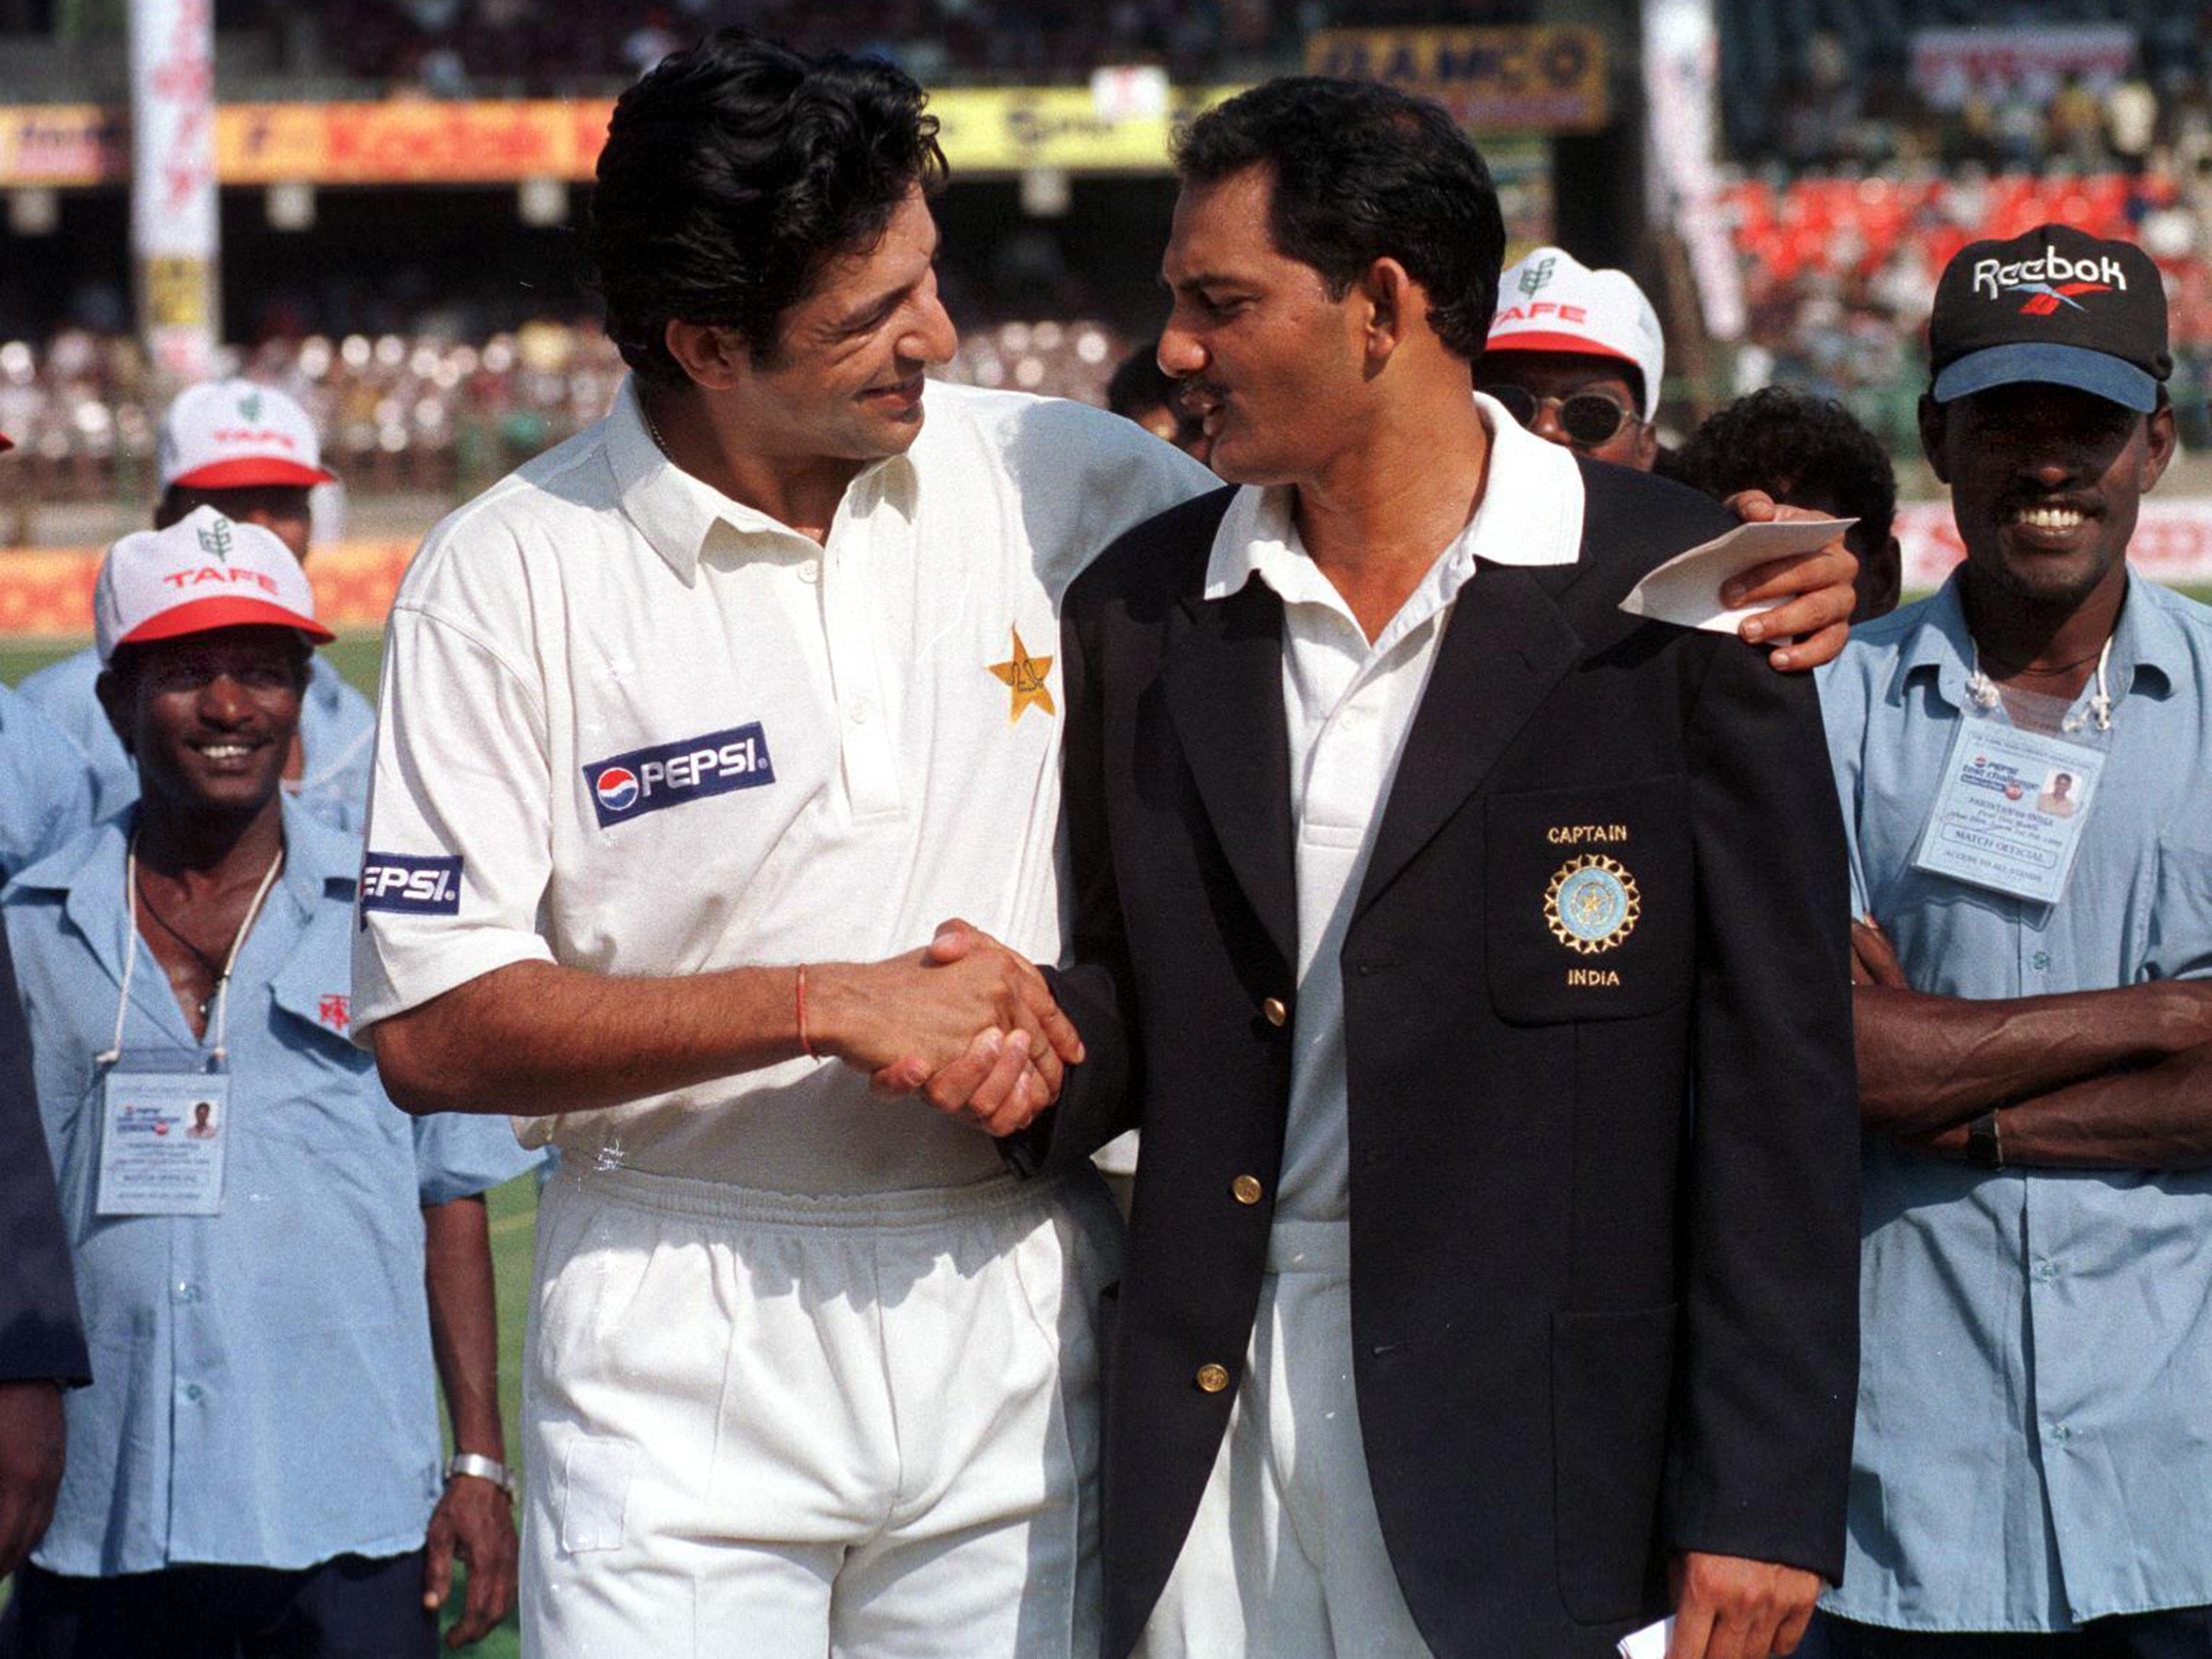 Rival skippers Wasim Akram and Mohammad Azharuddin // Getty